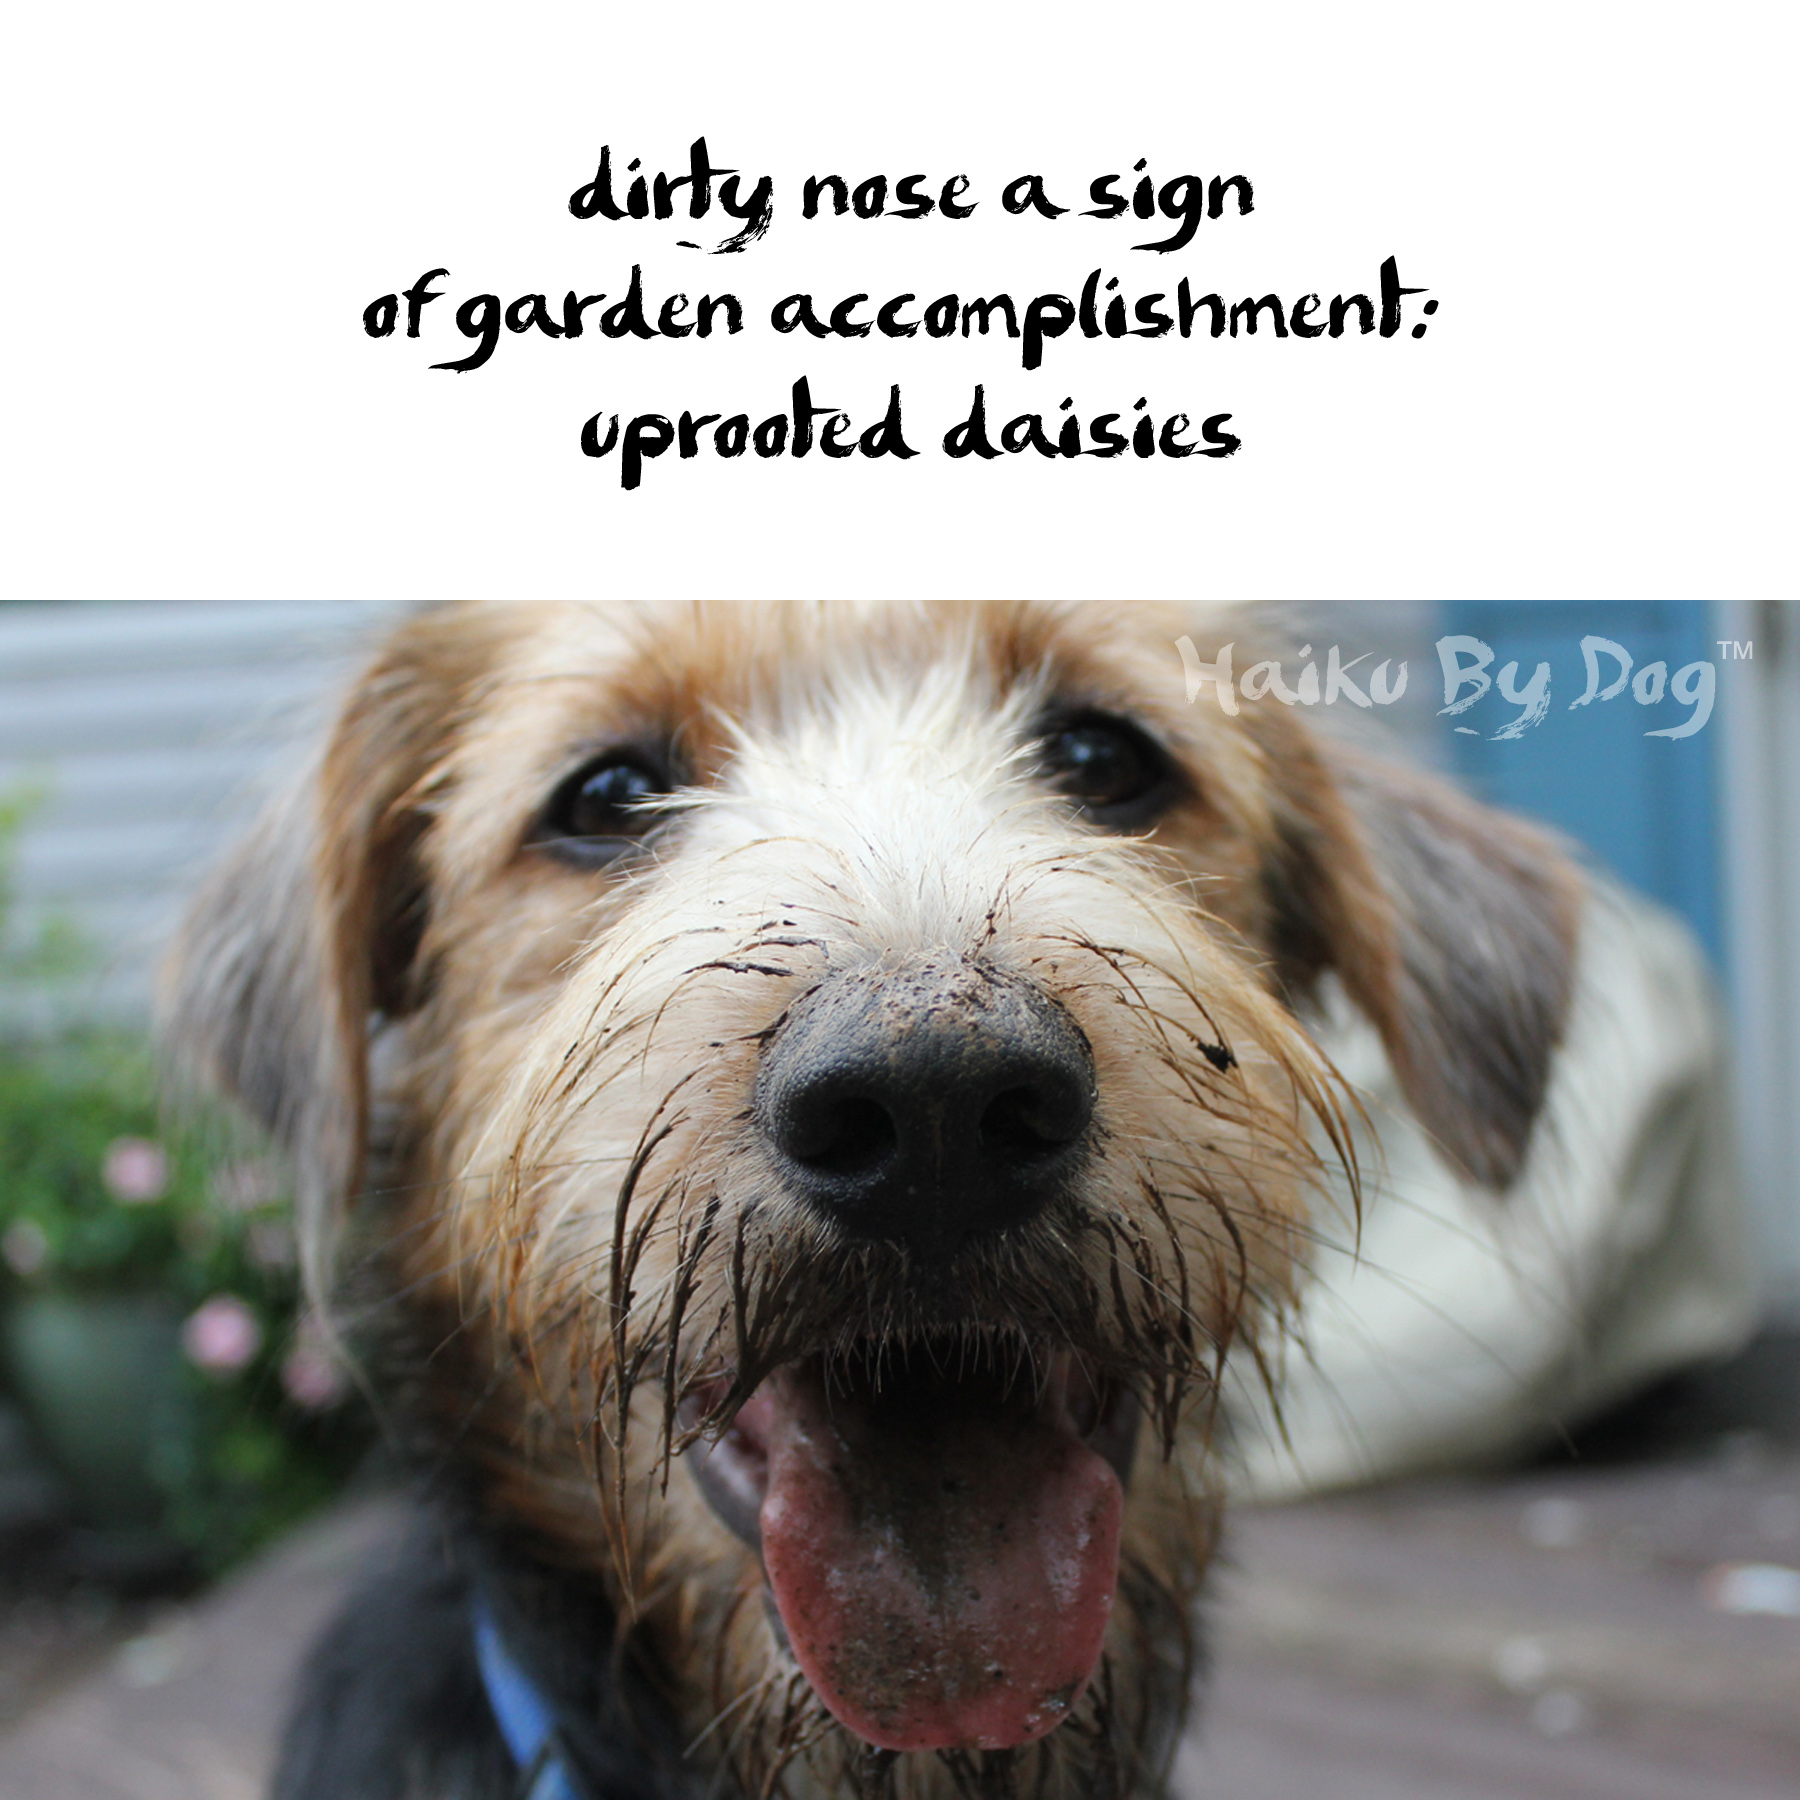 haiku by dog ac plishment life with dogs and cats